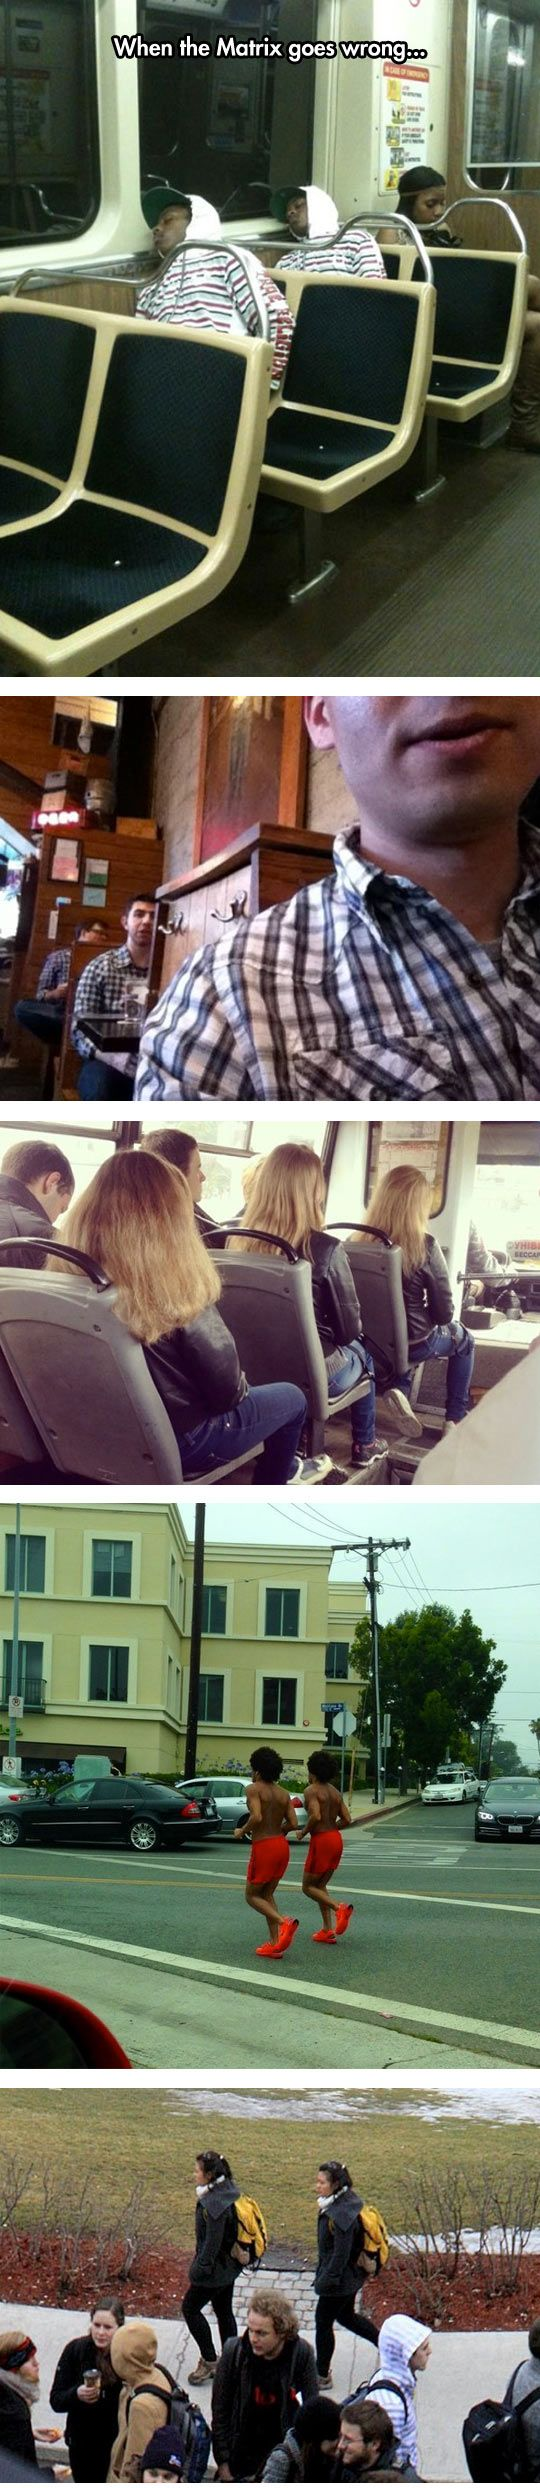 Oh, Another Glitch In The Matrix